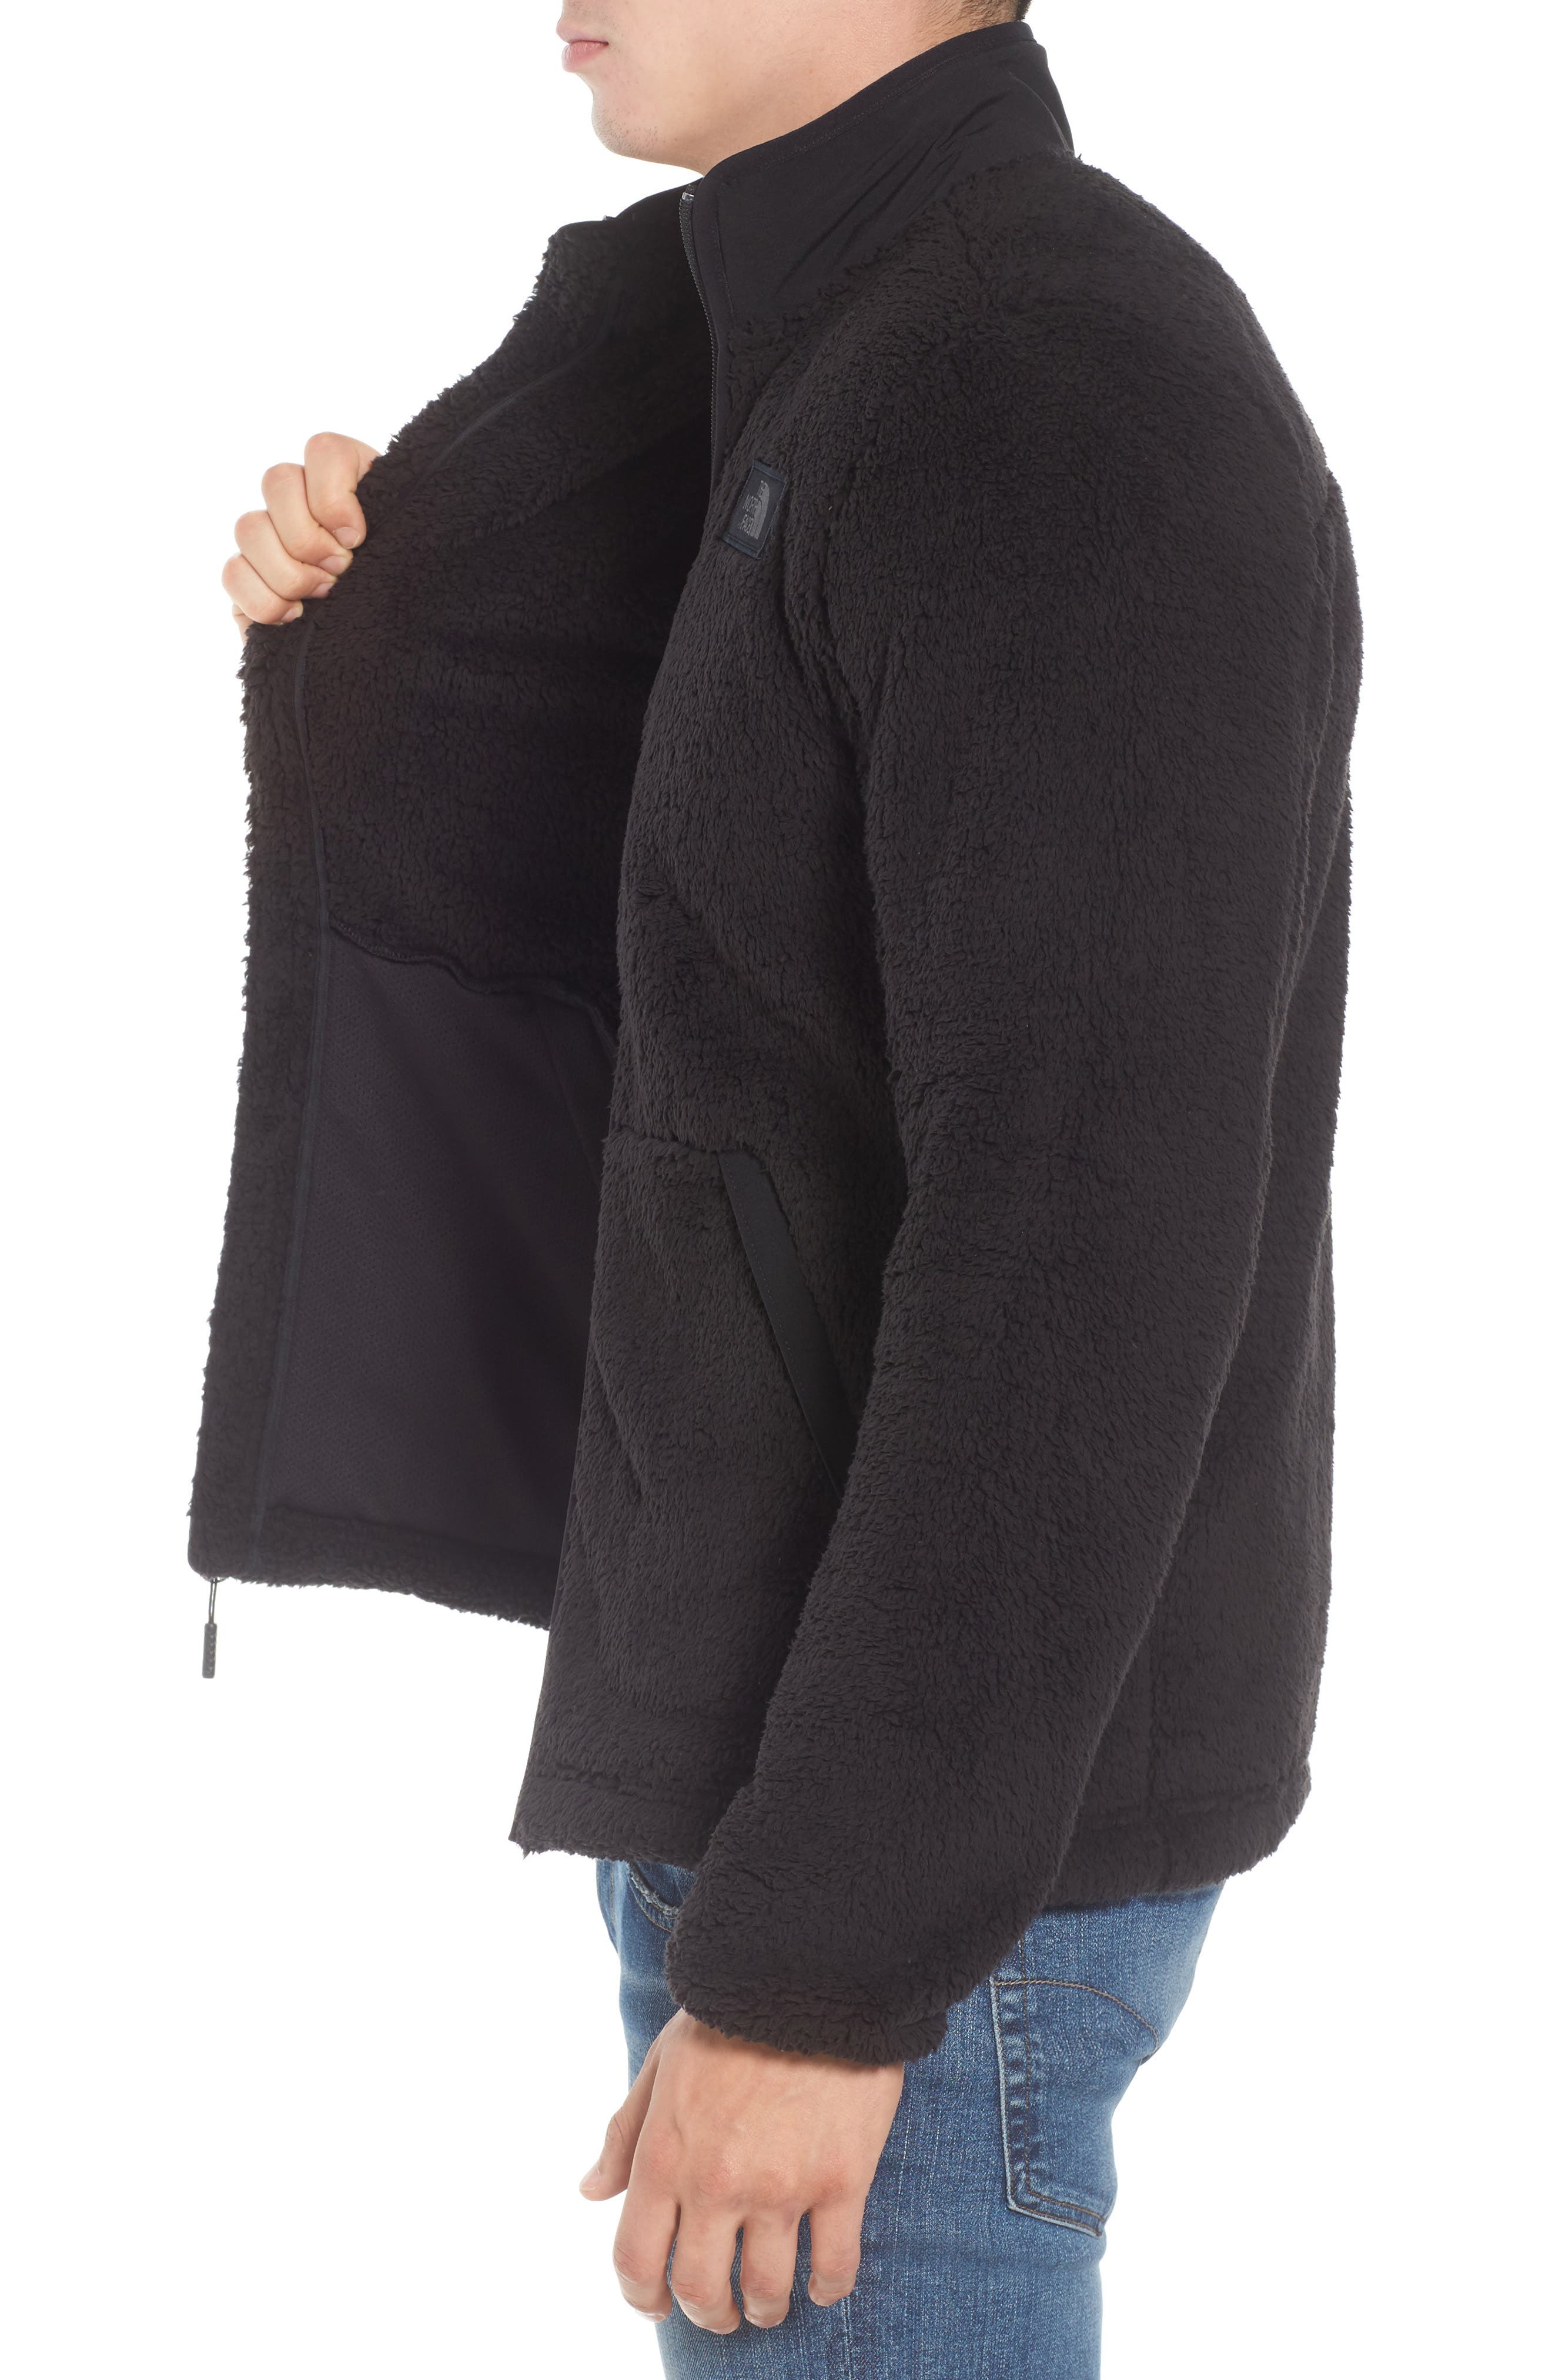 THE NORTH FACE, Campshire Zip Fleece Jacket, Alternate thumbnail 4, color, 001